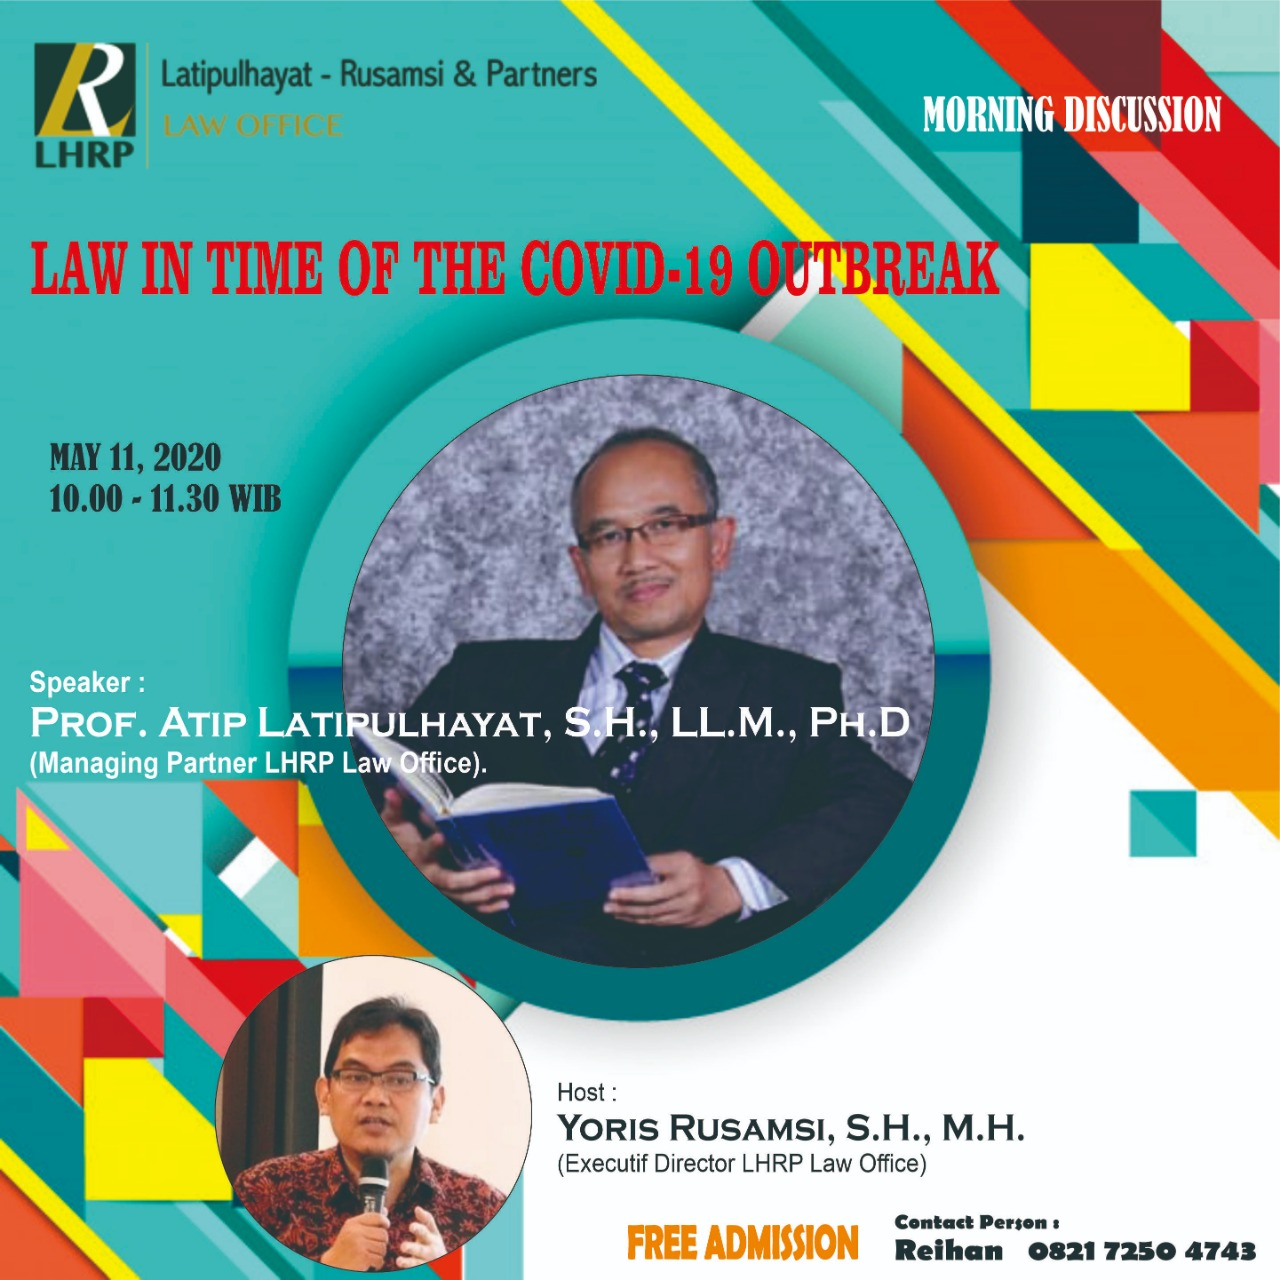 LAW IN TIME OF THE COVID-19 OUTBREAK